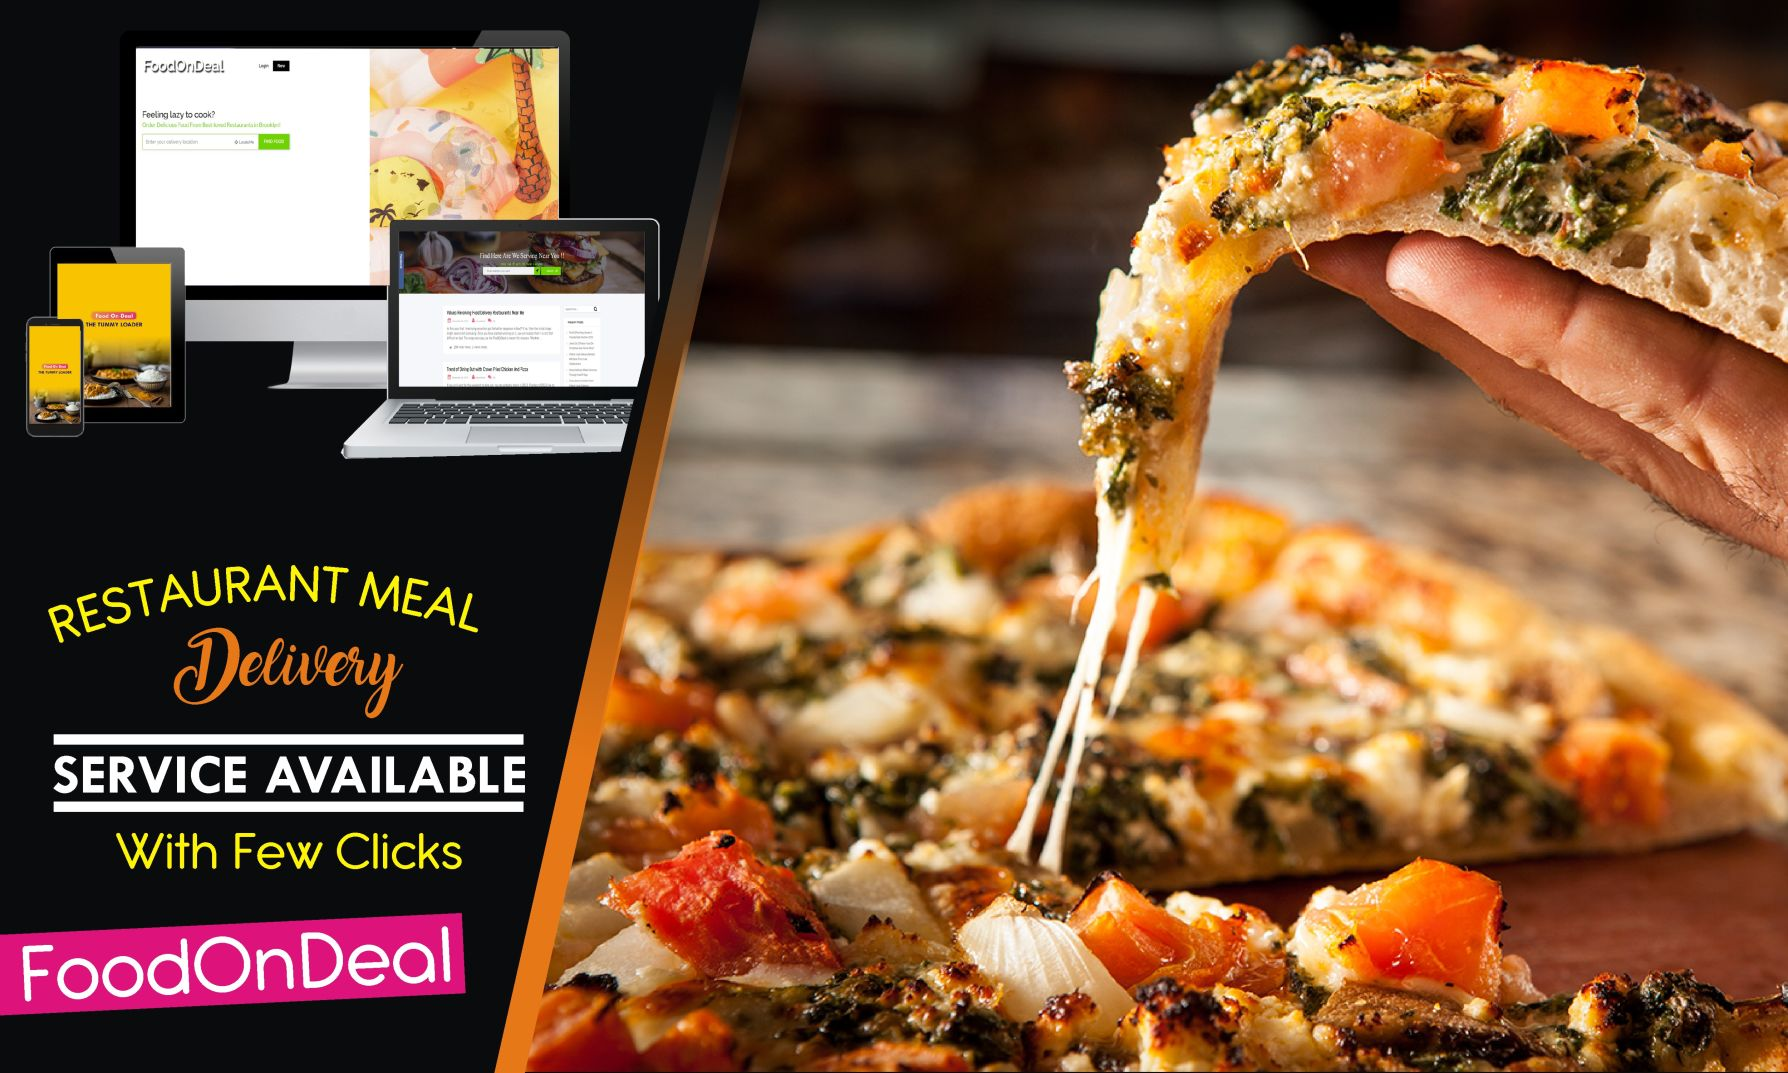 restaurant meal delivery services available with few clicks foodondeal